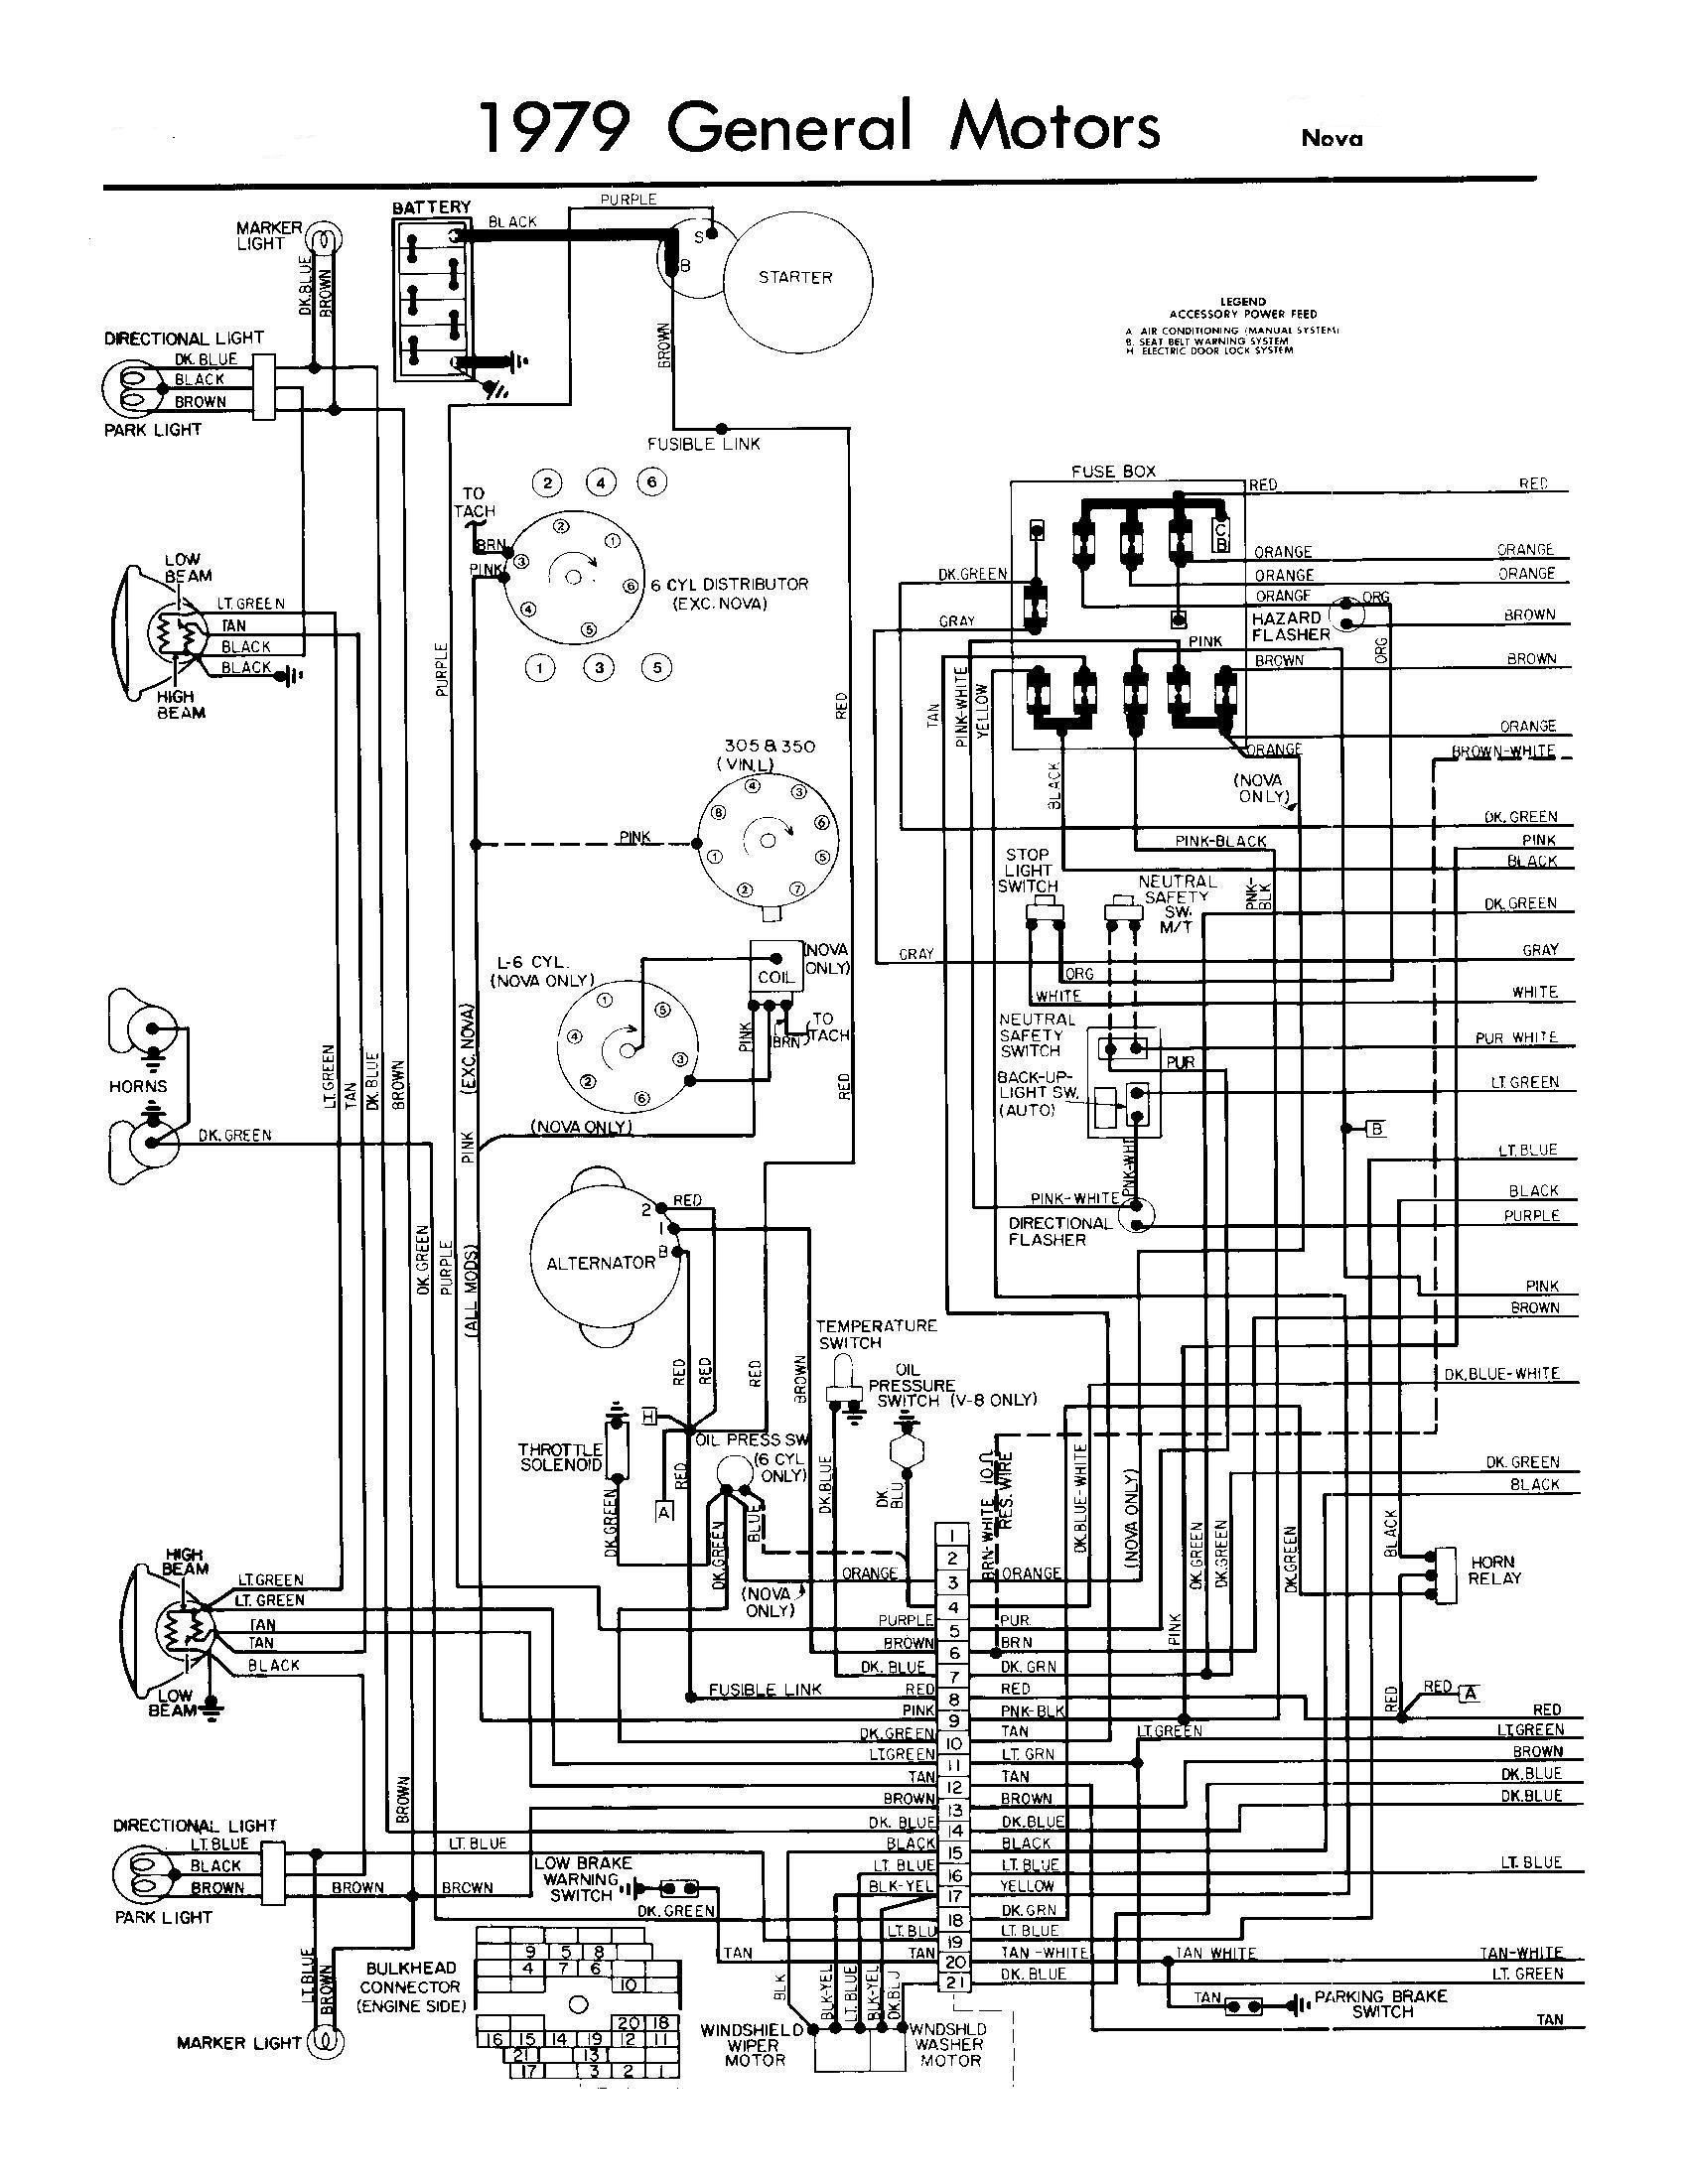 1975 chevy alternator wiring diagram wiring diagram Chevrolet Alternator Wiring Diagram 1975 camaro alternator wiring diagram oue eleventh hour it \\u202275 chevy alternator wiring diagram data